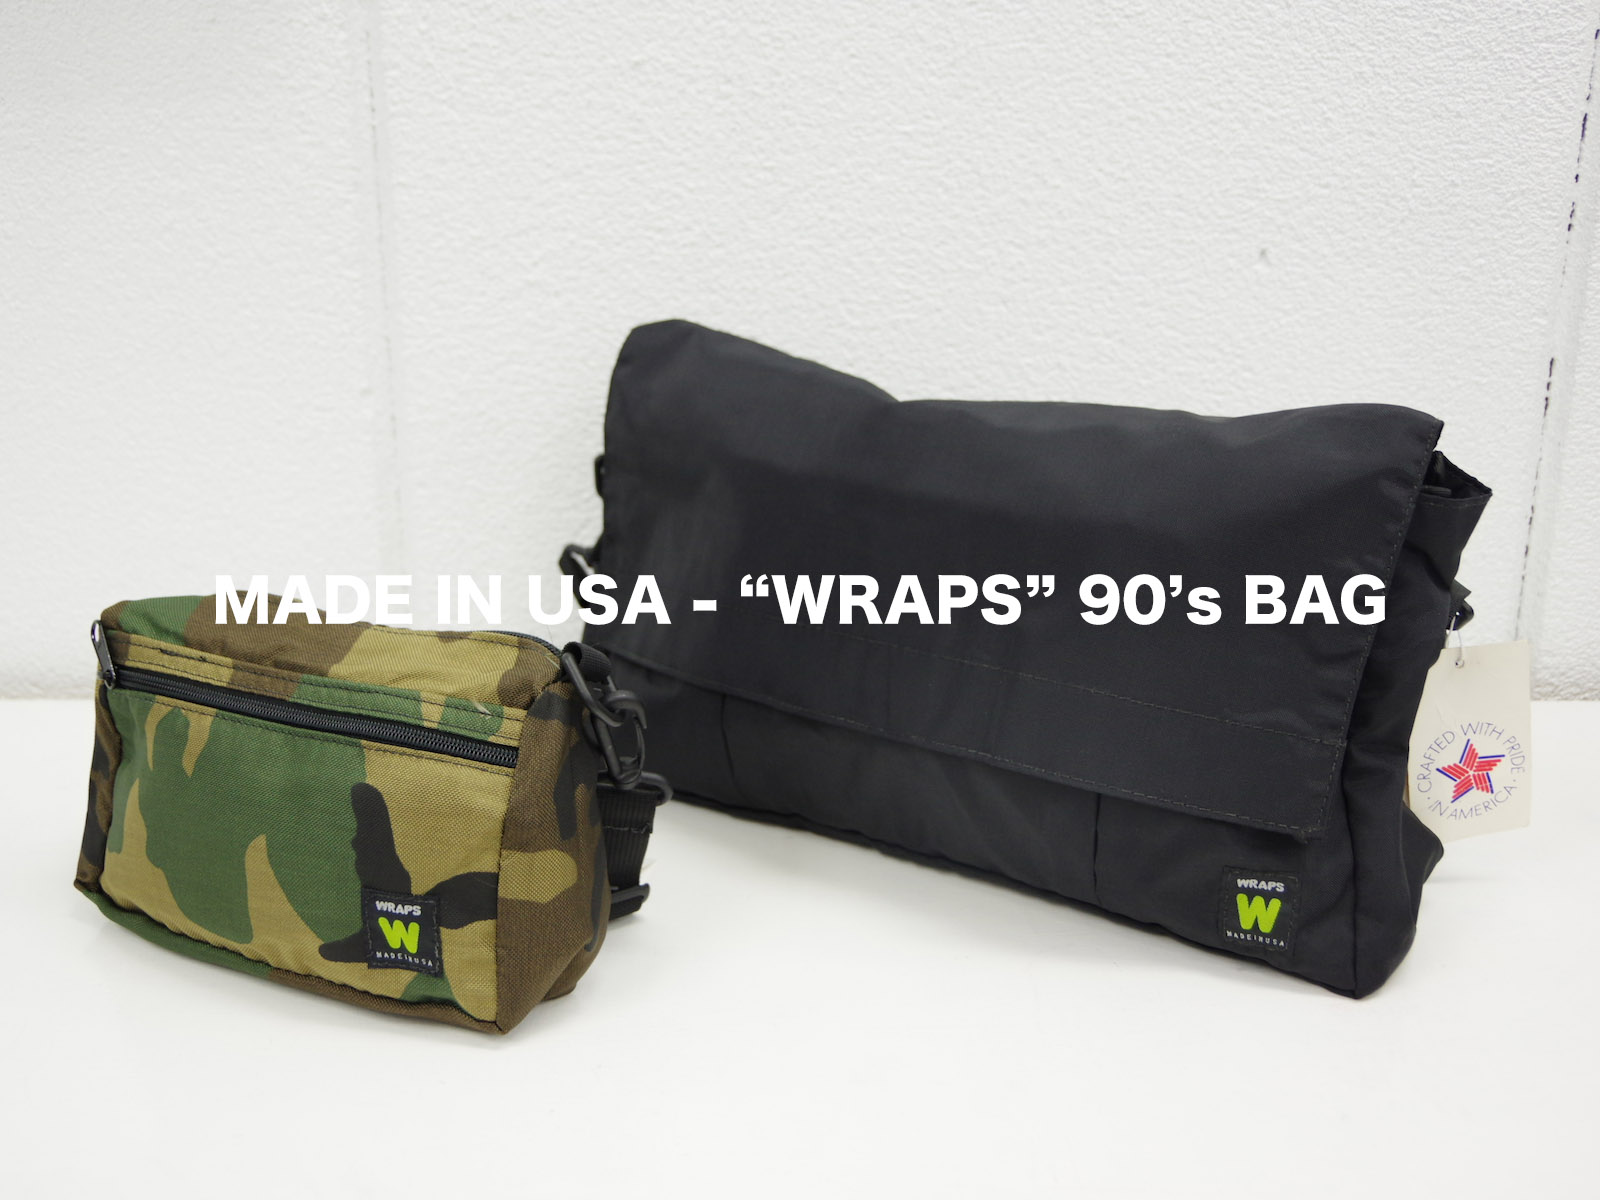 MADE IN USA – WRAPS 90's BAG